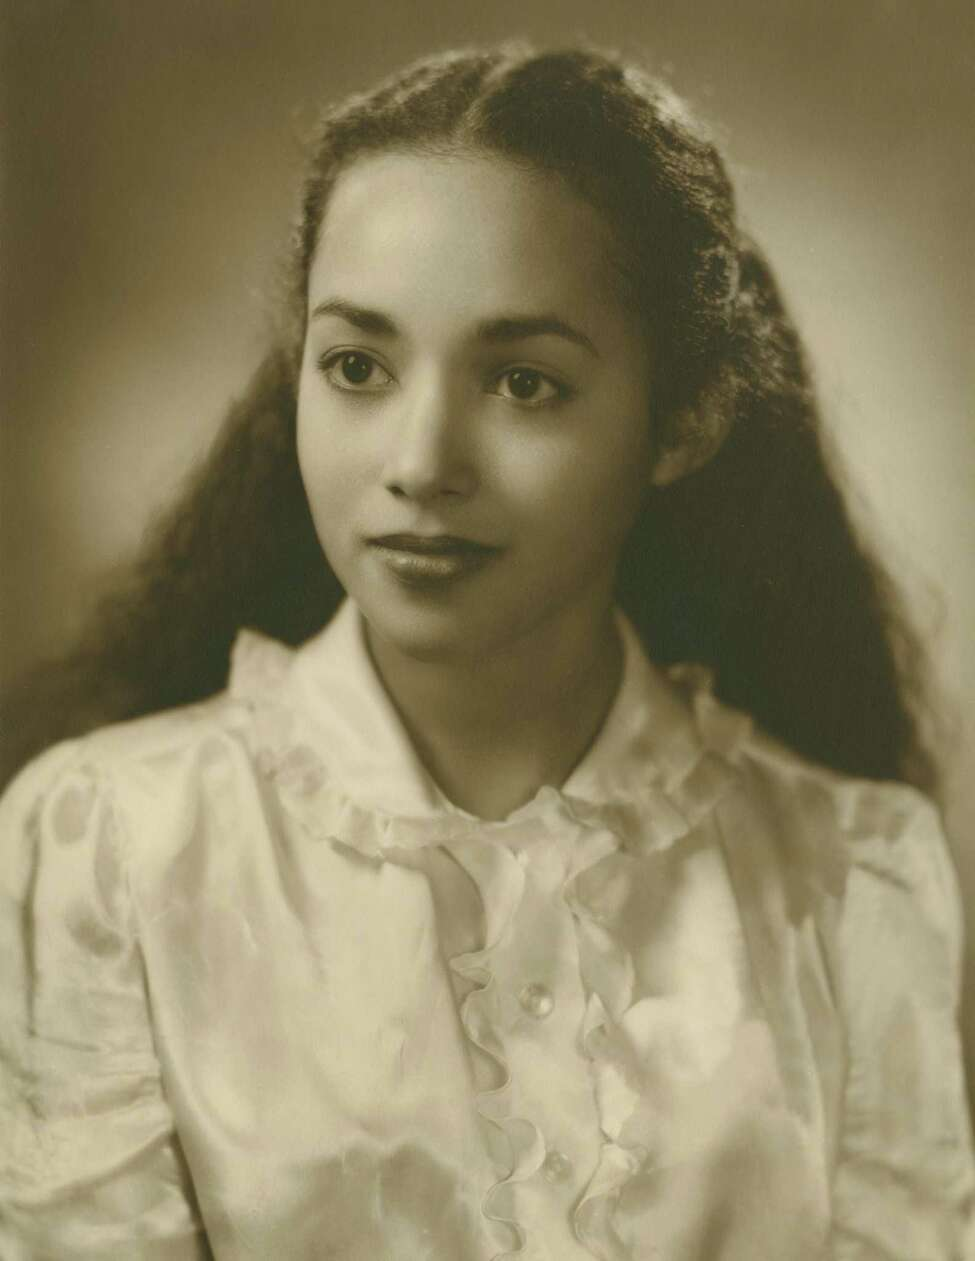 A photo of Mia Mouzon from the Skidmore College yearbook the year she graduated, 1947. Mouzon was the first woman of color to graduate from Skidmore. (Photo provided by Skidmore College)